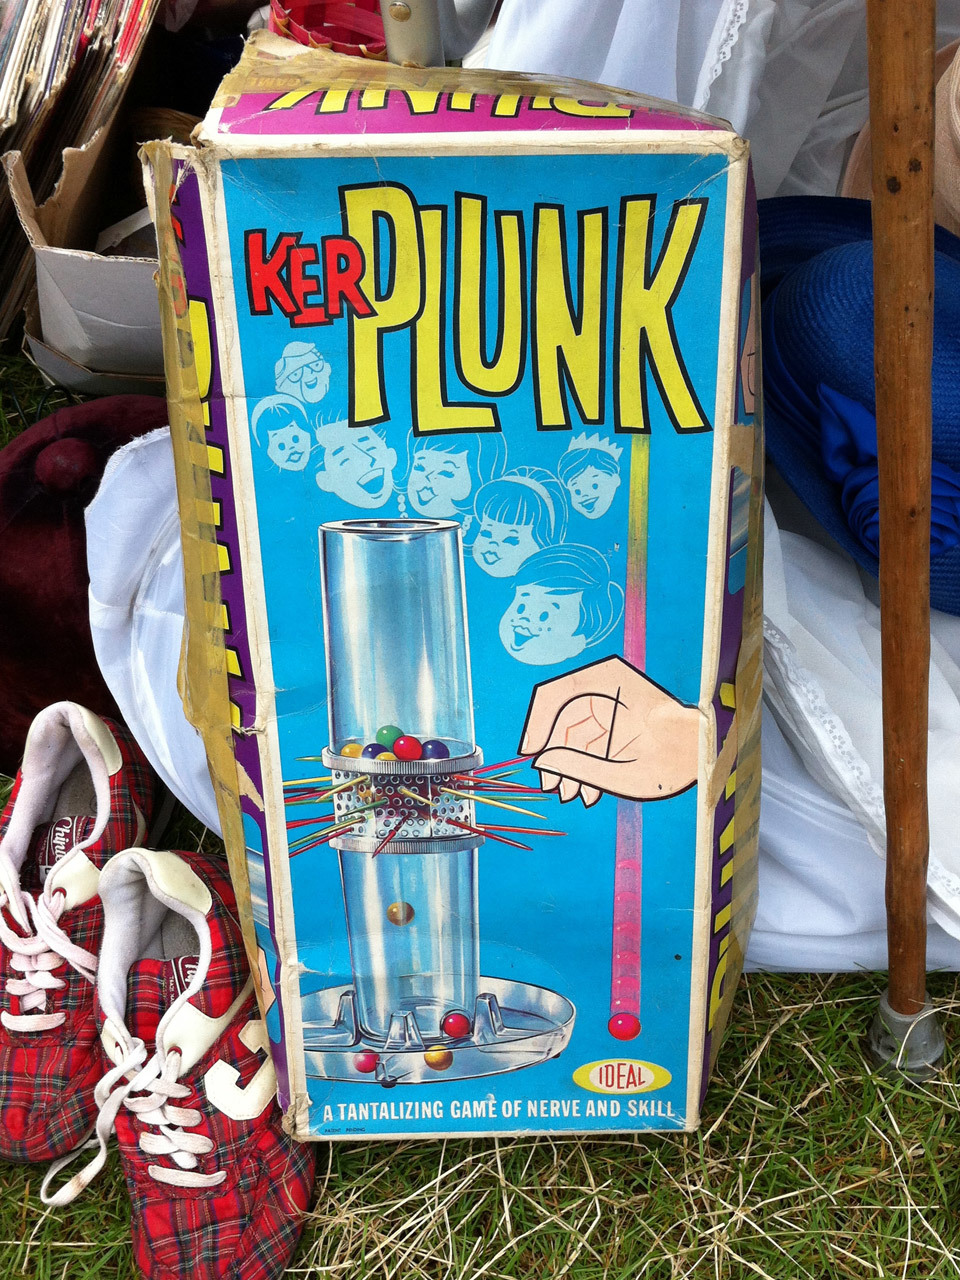 Thing I Didn't Buy At The Car Boot Sale: Kerplunk.